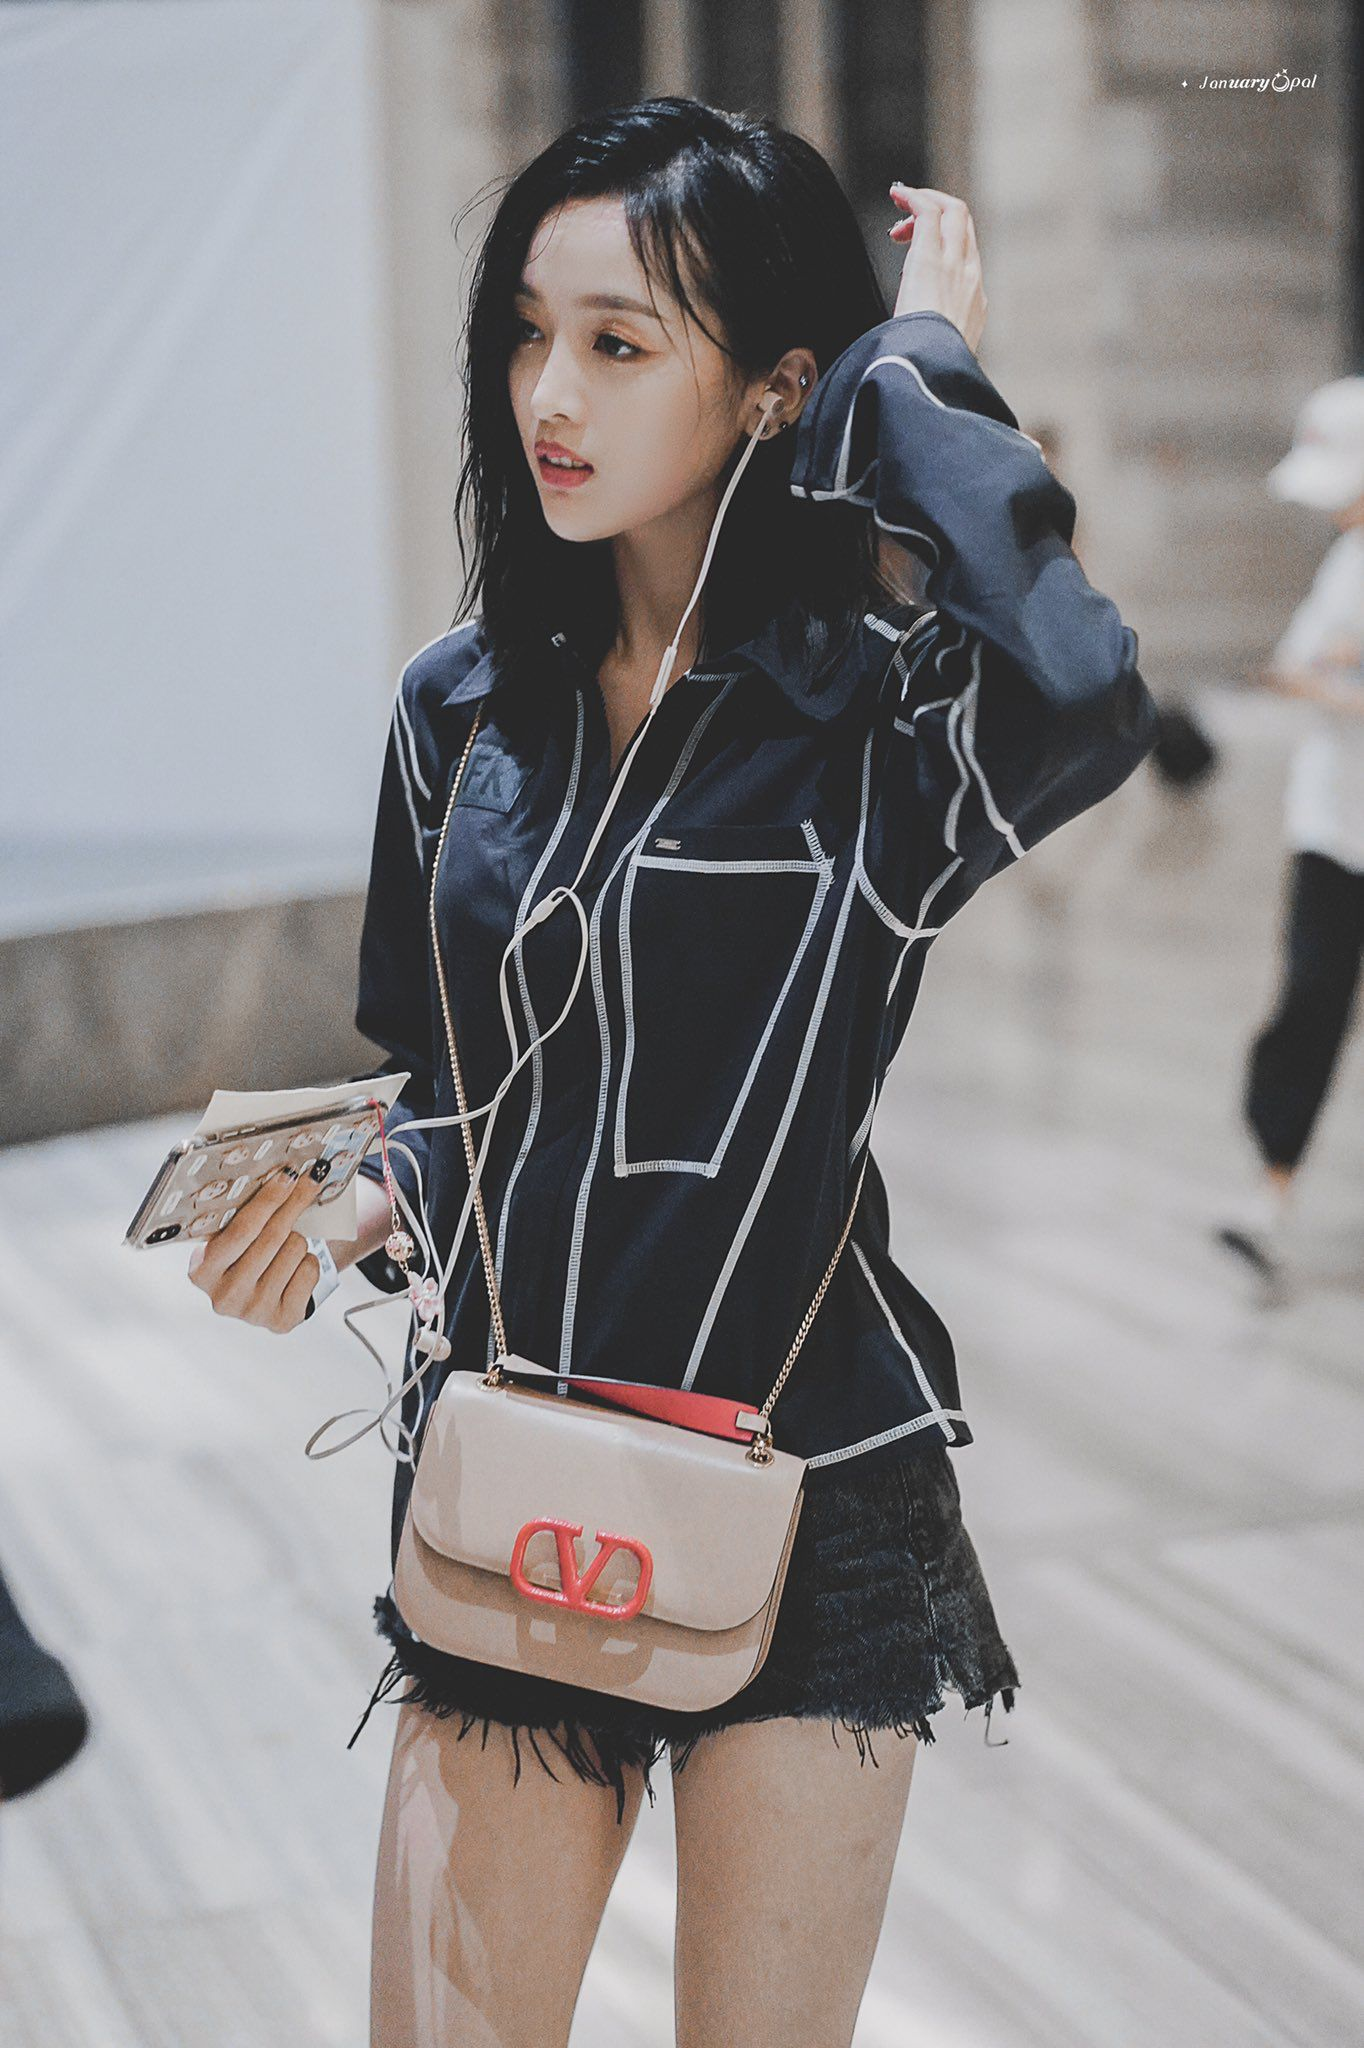 Pin by Teira Azman on WJSN - Coach dinky crossbody, Crossbody, Fashion